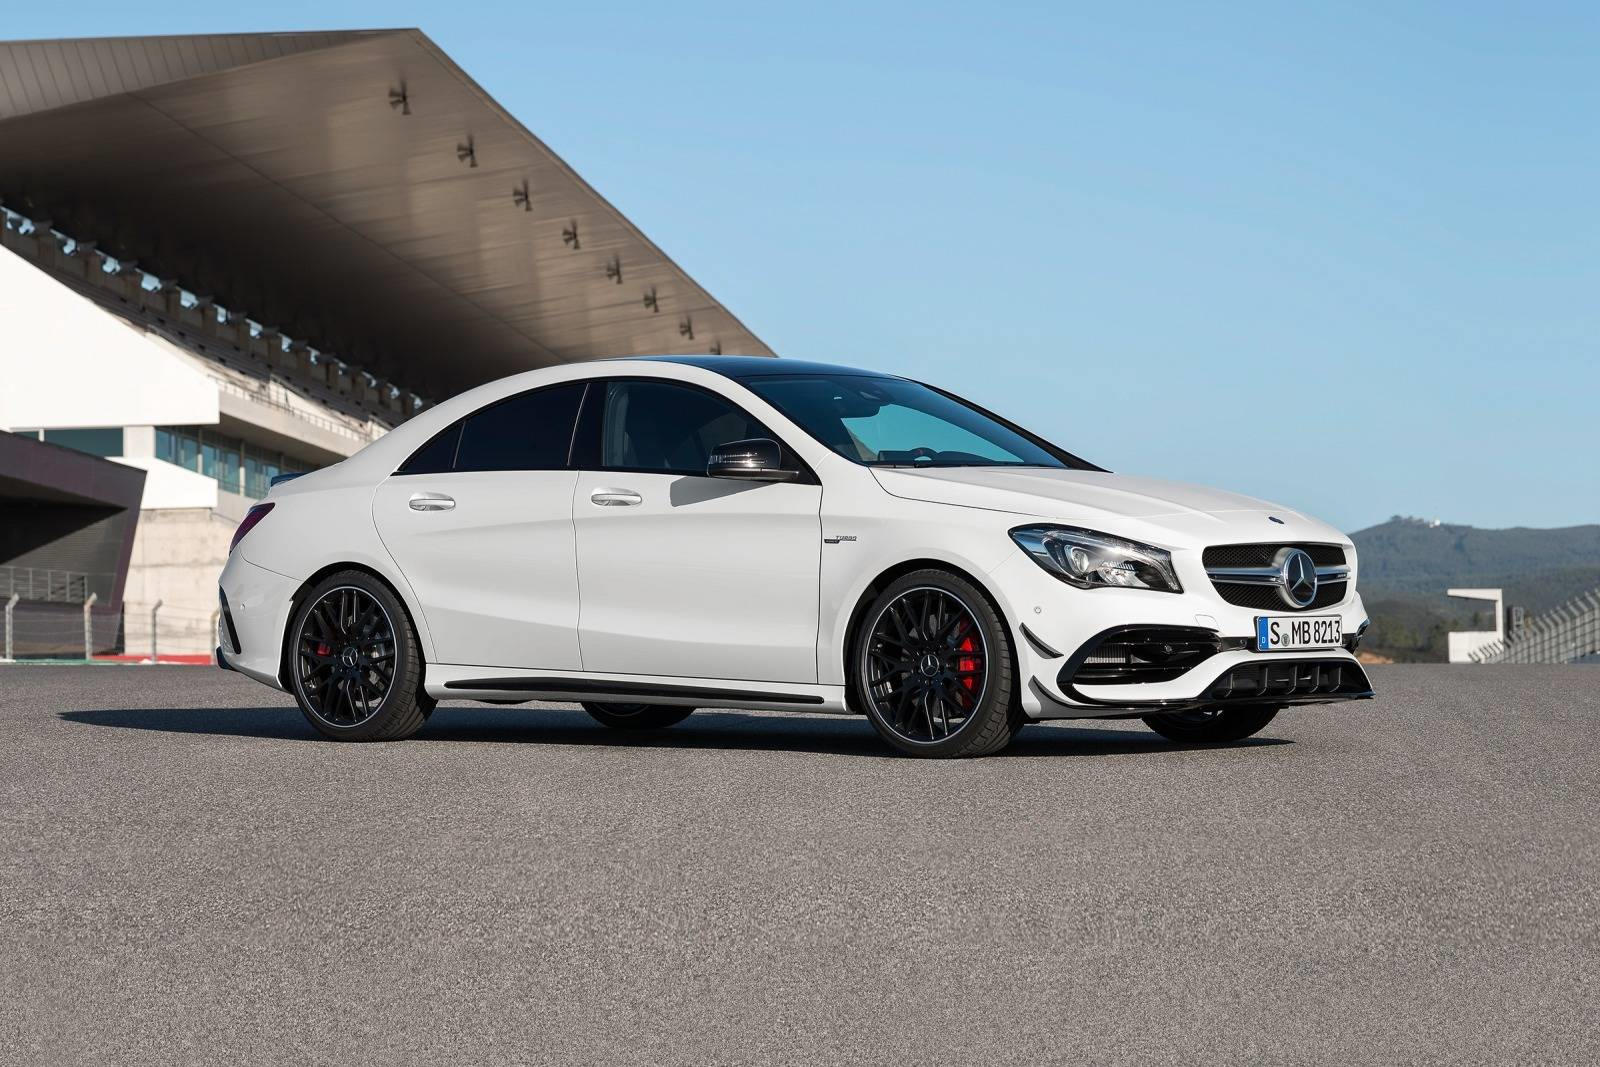 2018 mercedes amg cla45 coupe review trims specs and price carbuzz